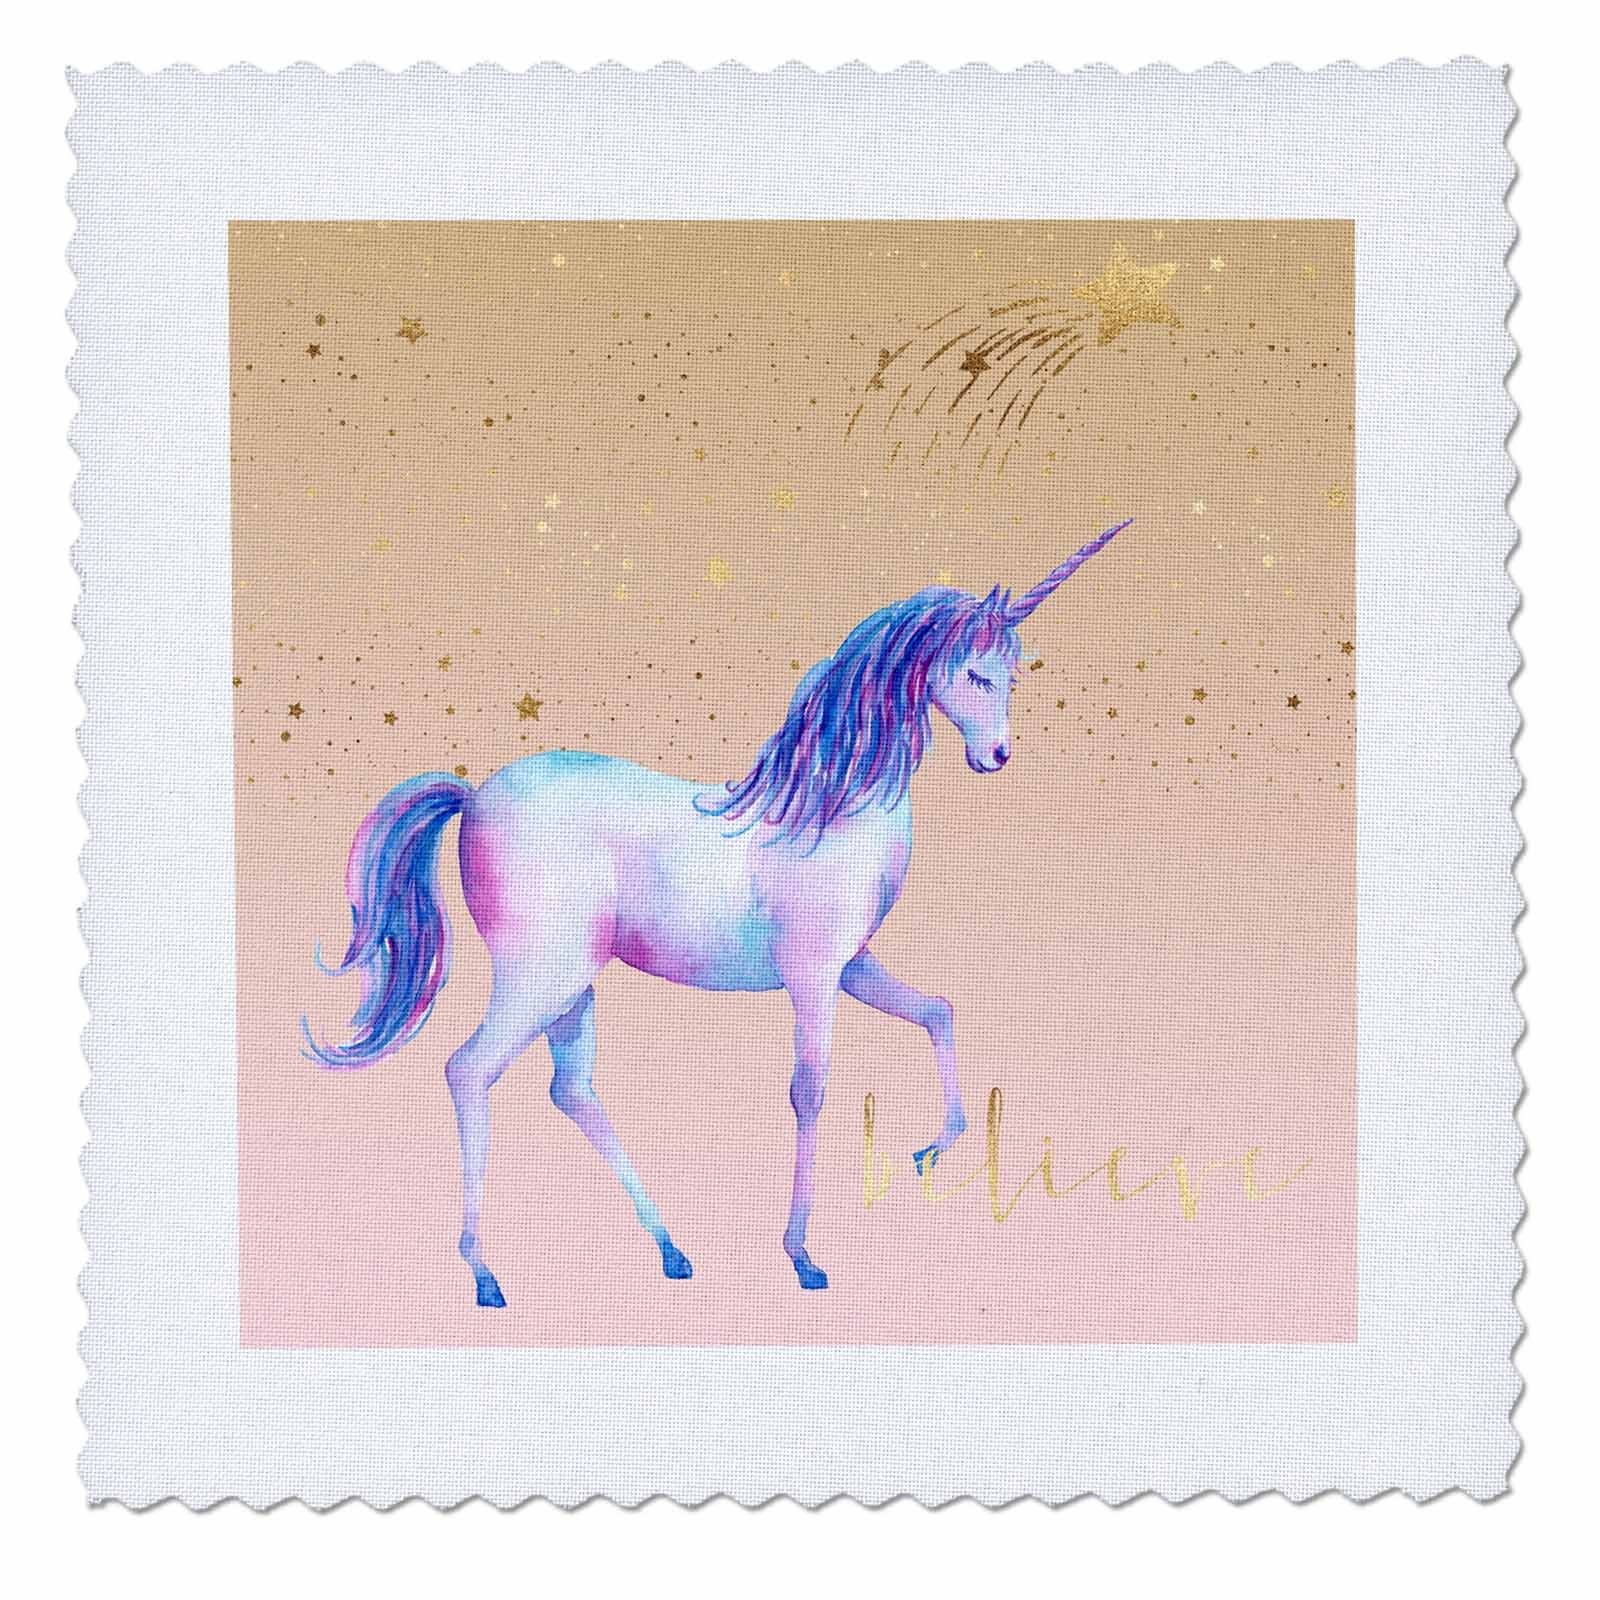 3dRose PS Animals - Image of Peach Gold Stars Believe Unicorn - 20x20 inch quilt square (qs_280781_8)